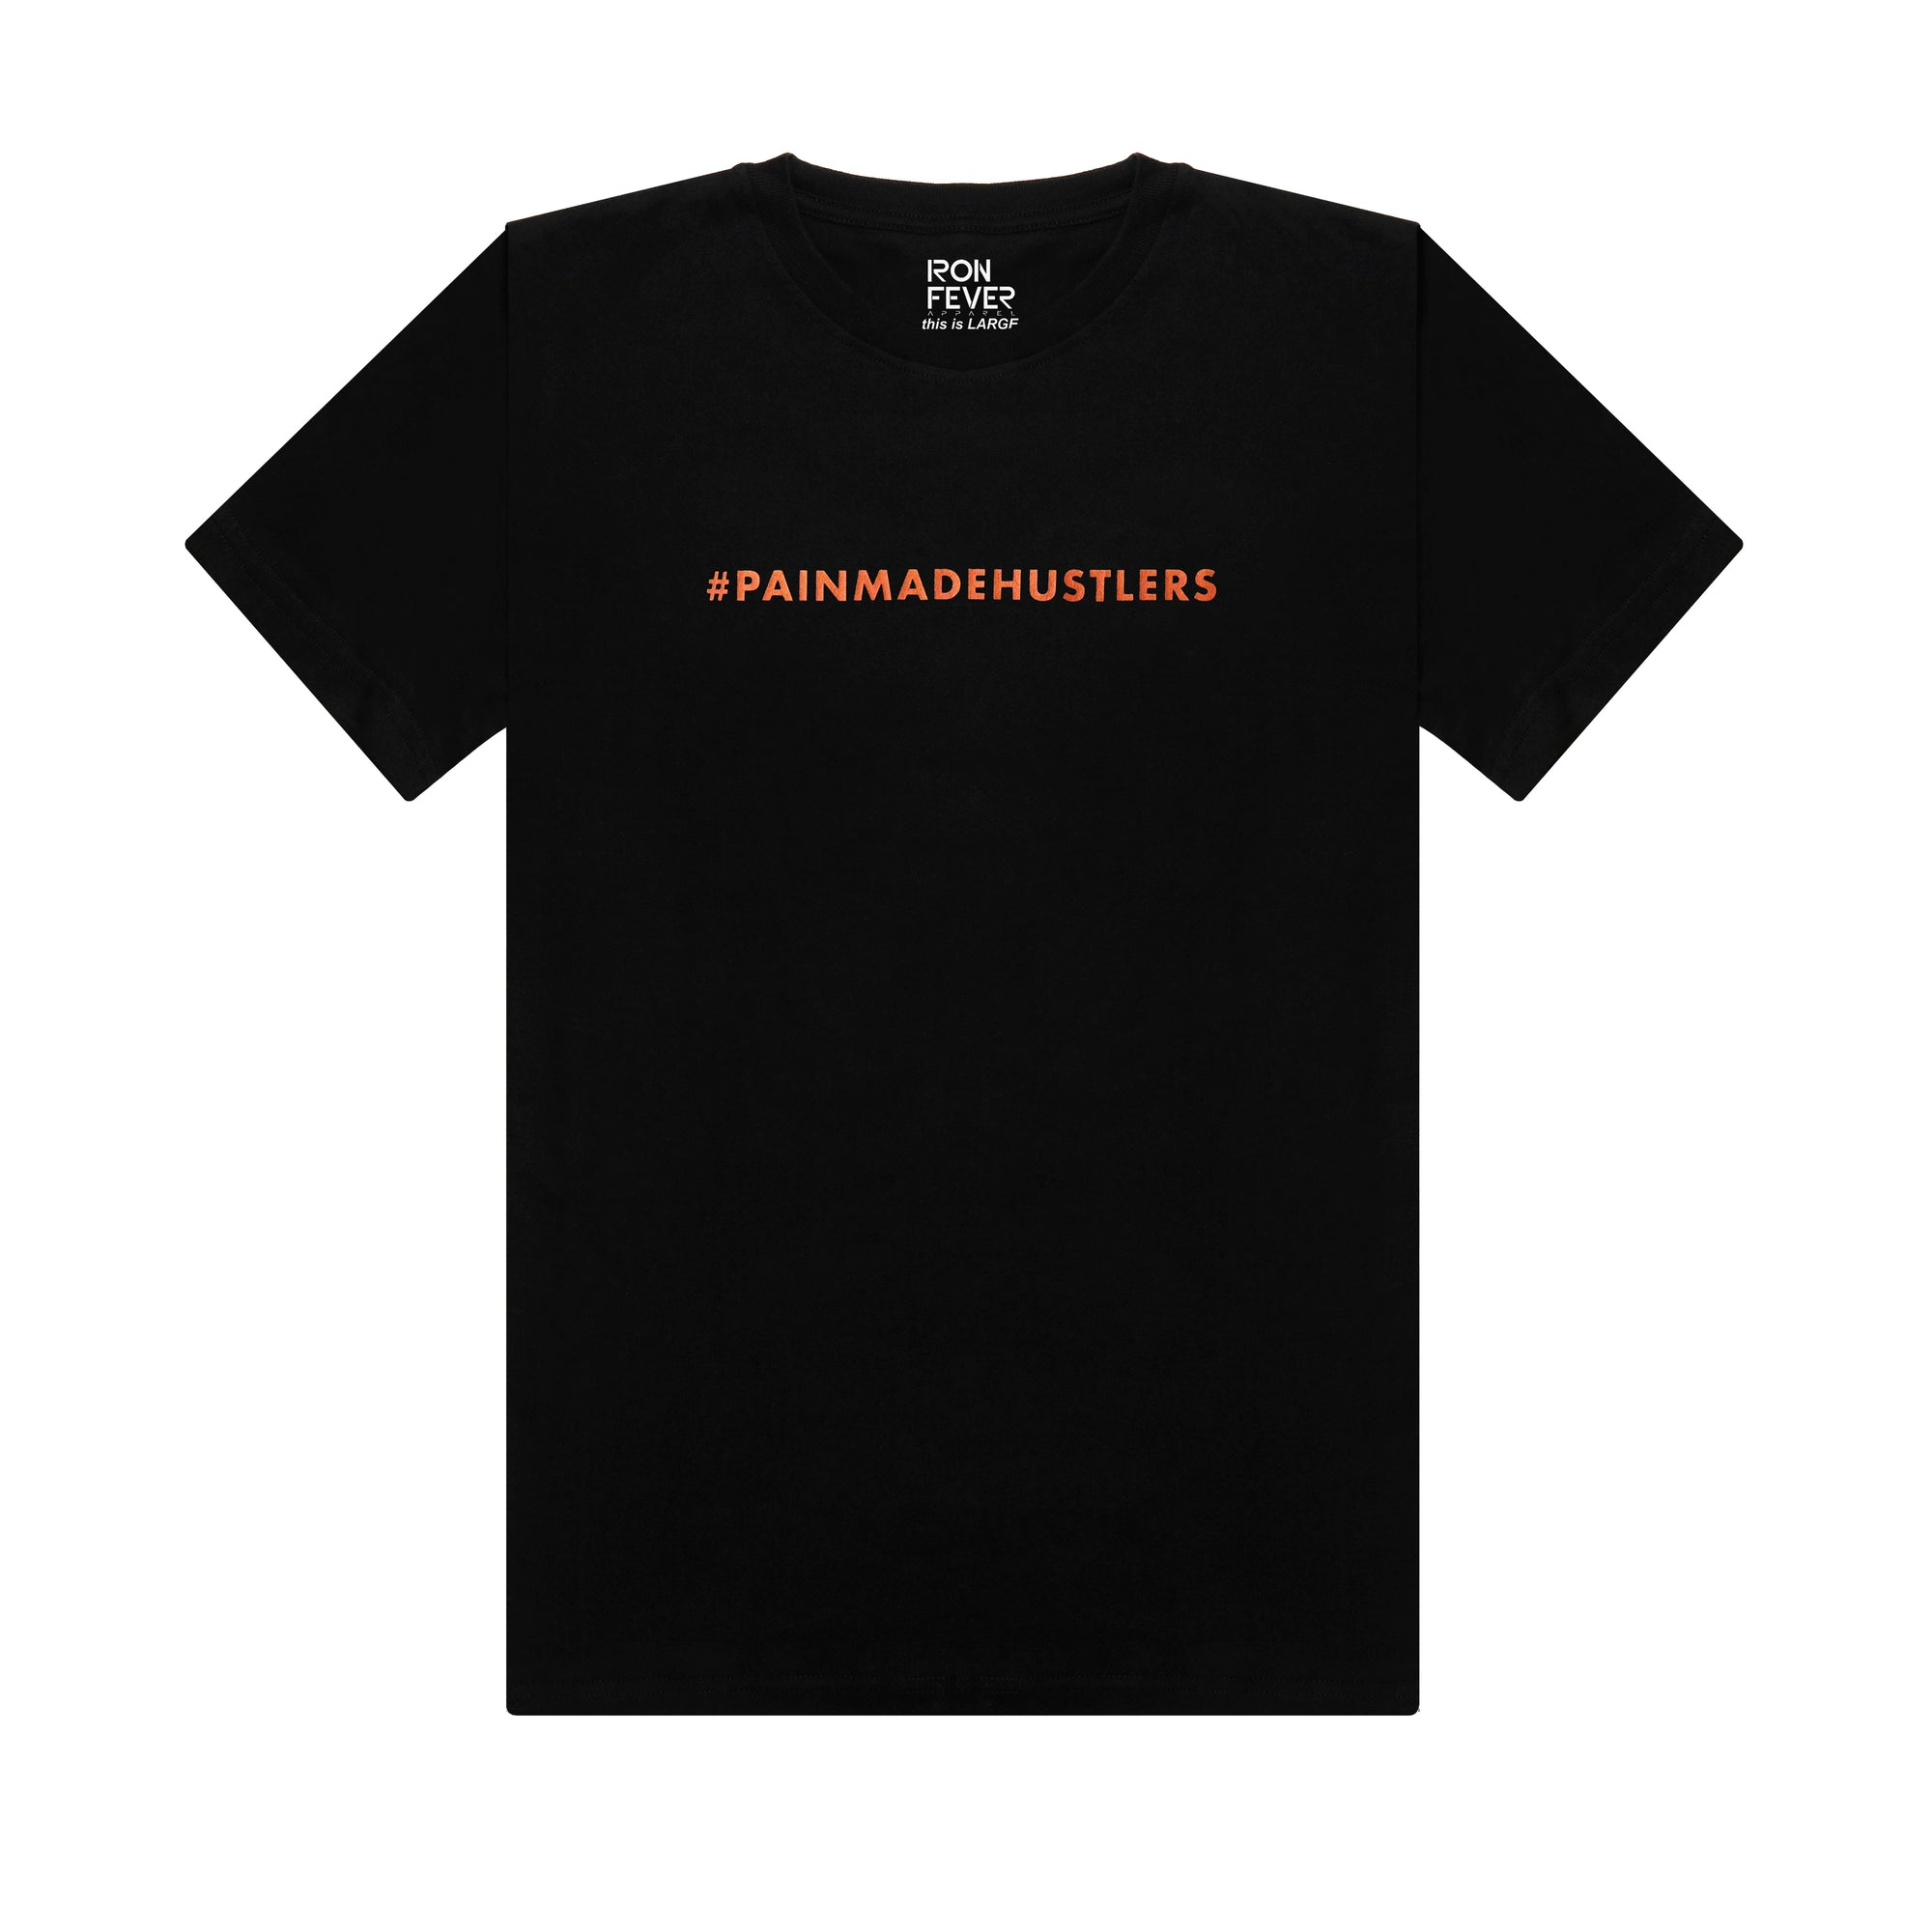 #PAINMADEHUSTLERS - Black/ Metallic Orange